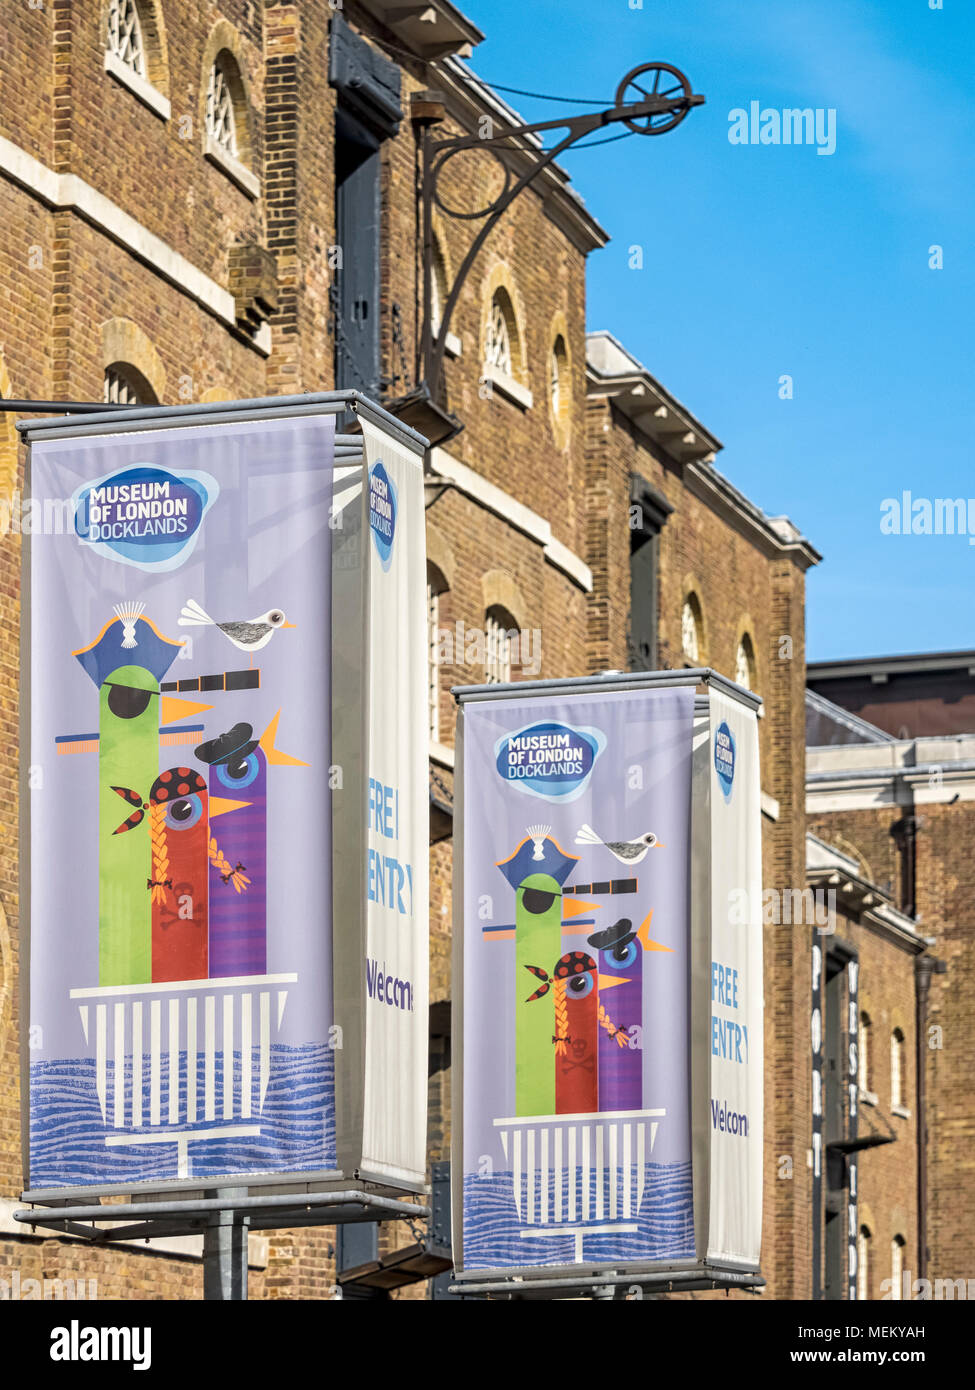 DOCKLANDS, LONDON:  Banner Signs outside Museum of London Docklands - Stock Image